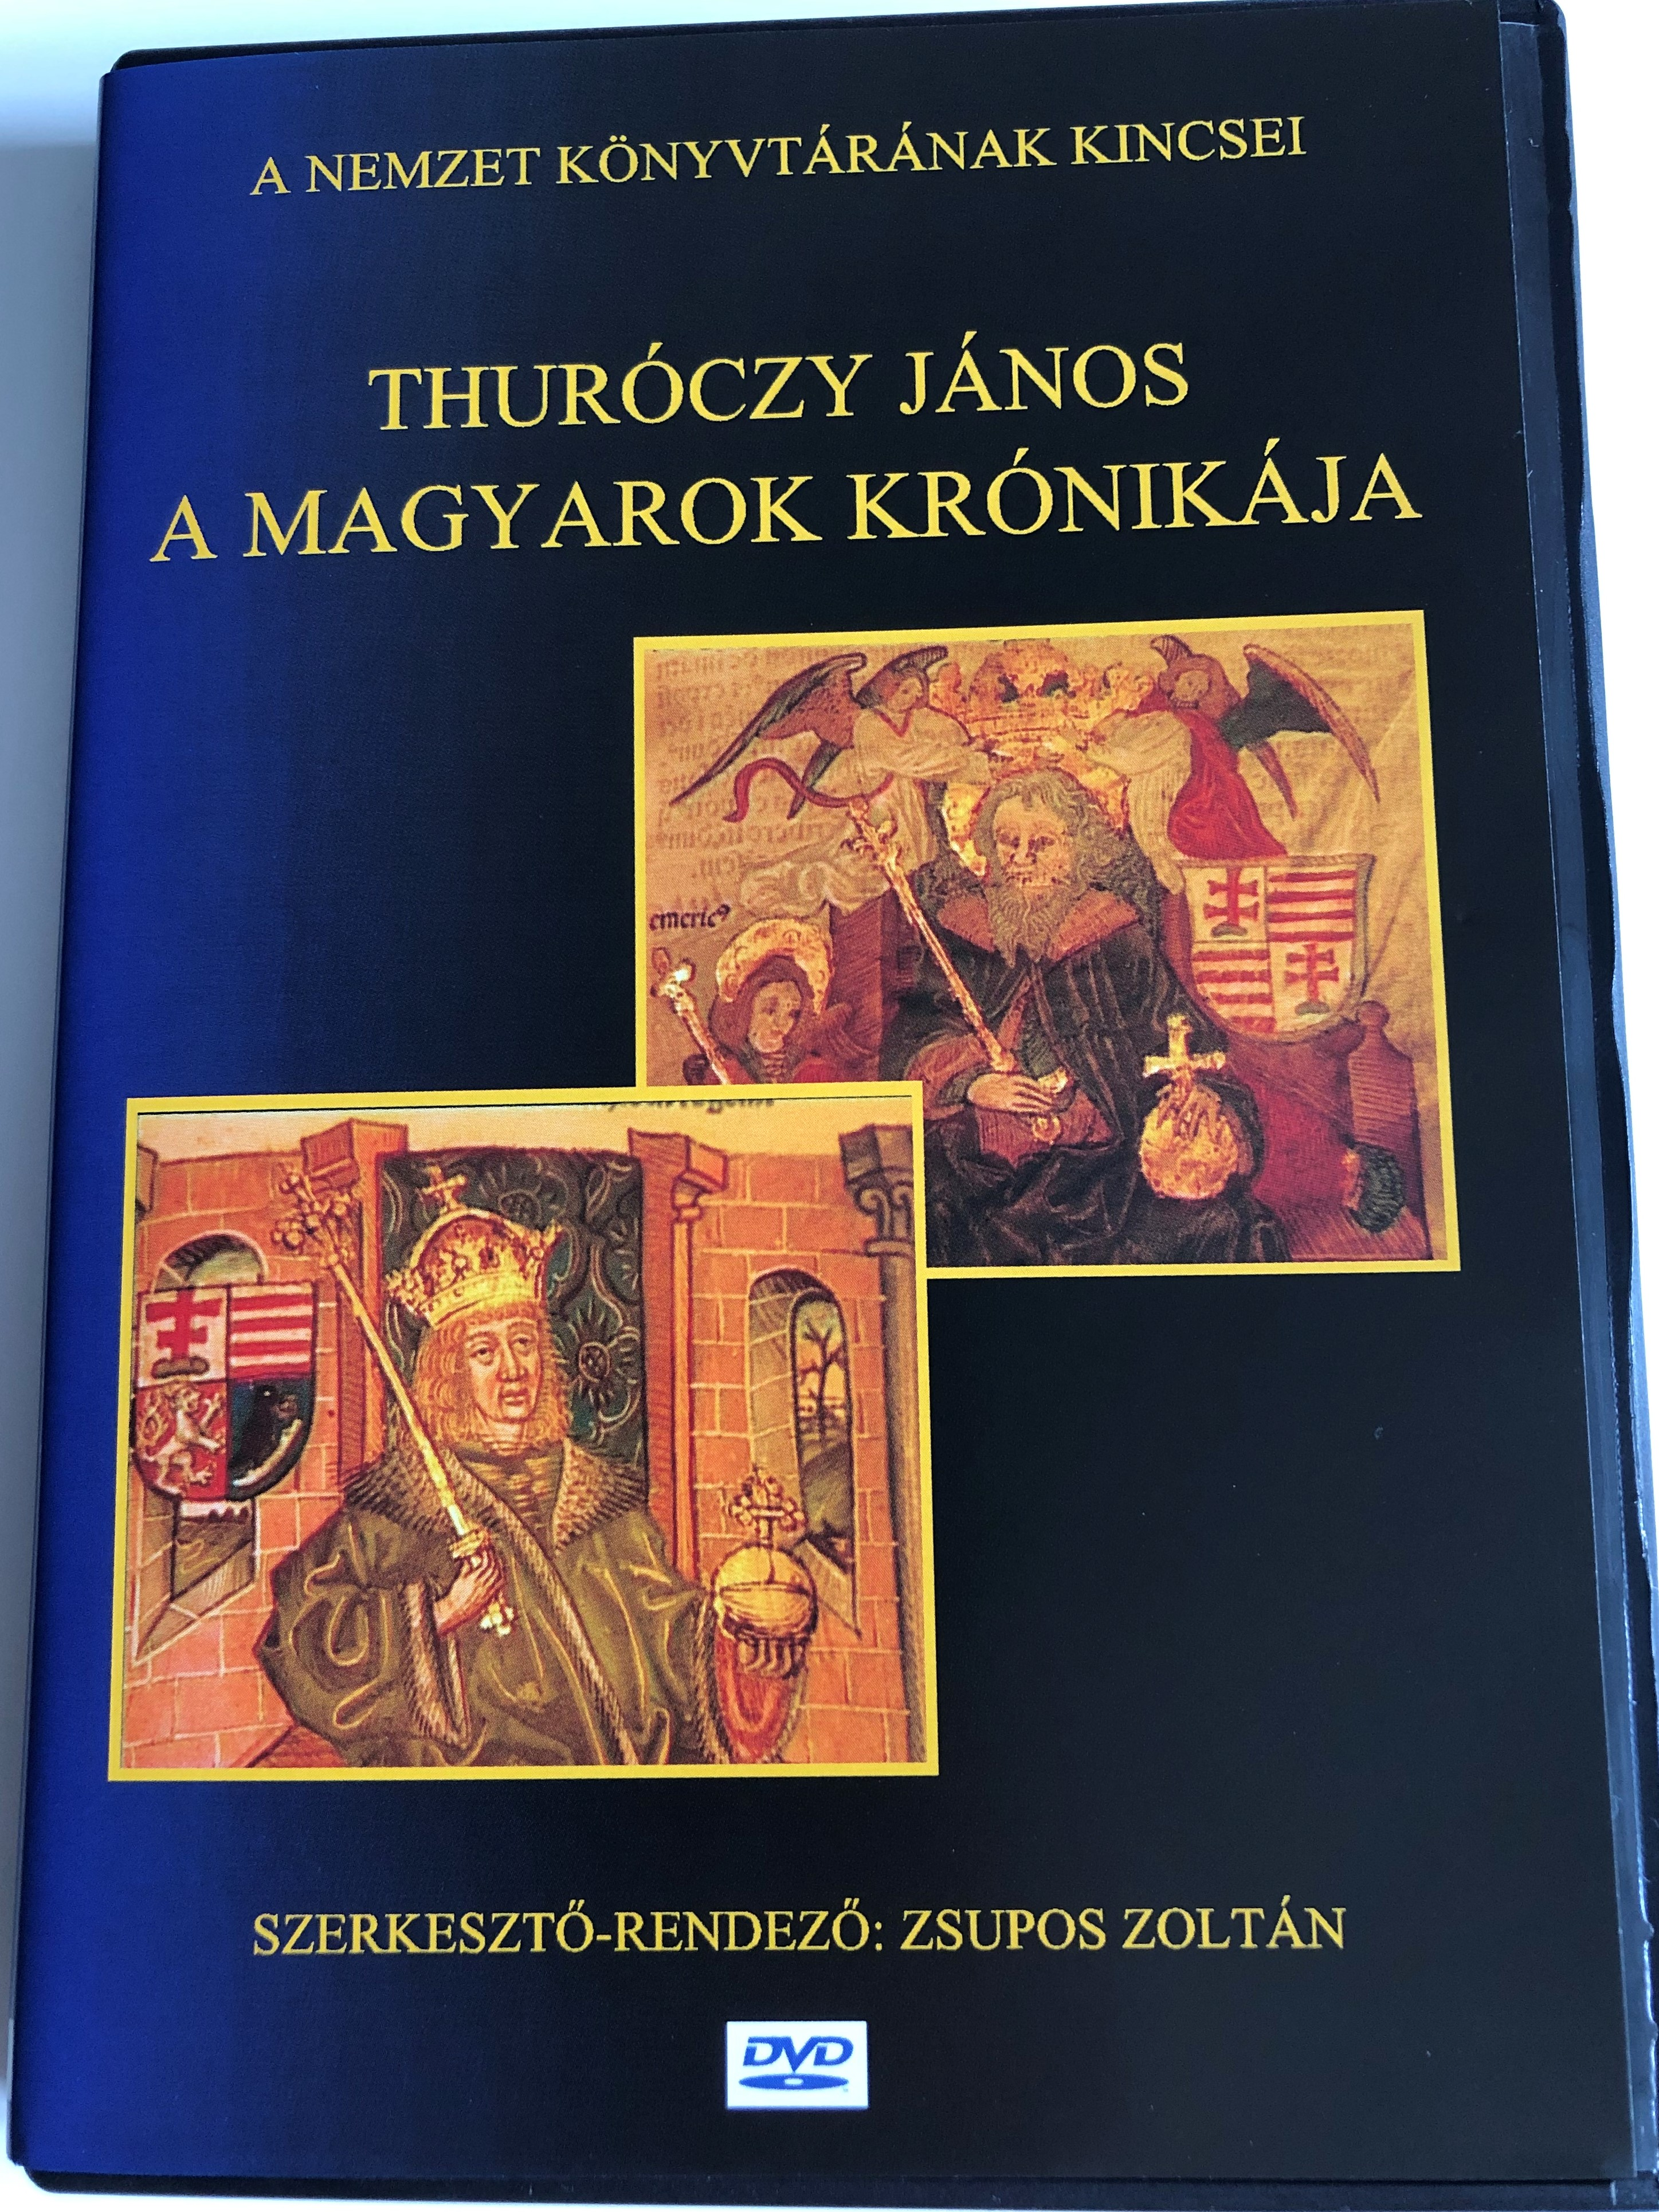 a-magyarok-kr-nik-ja-thur-czy-j-nos-dvd-directed-edited-by-zsupos-zolt-n-the-chronicle-of-the-hungarians-3-part-video-presentation-of-the-thur-czy-chronicle-bet0165-1-.jpg